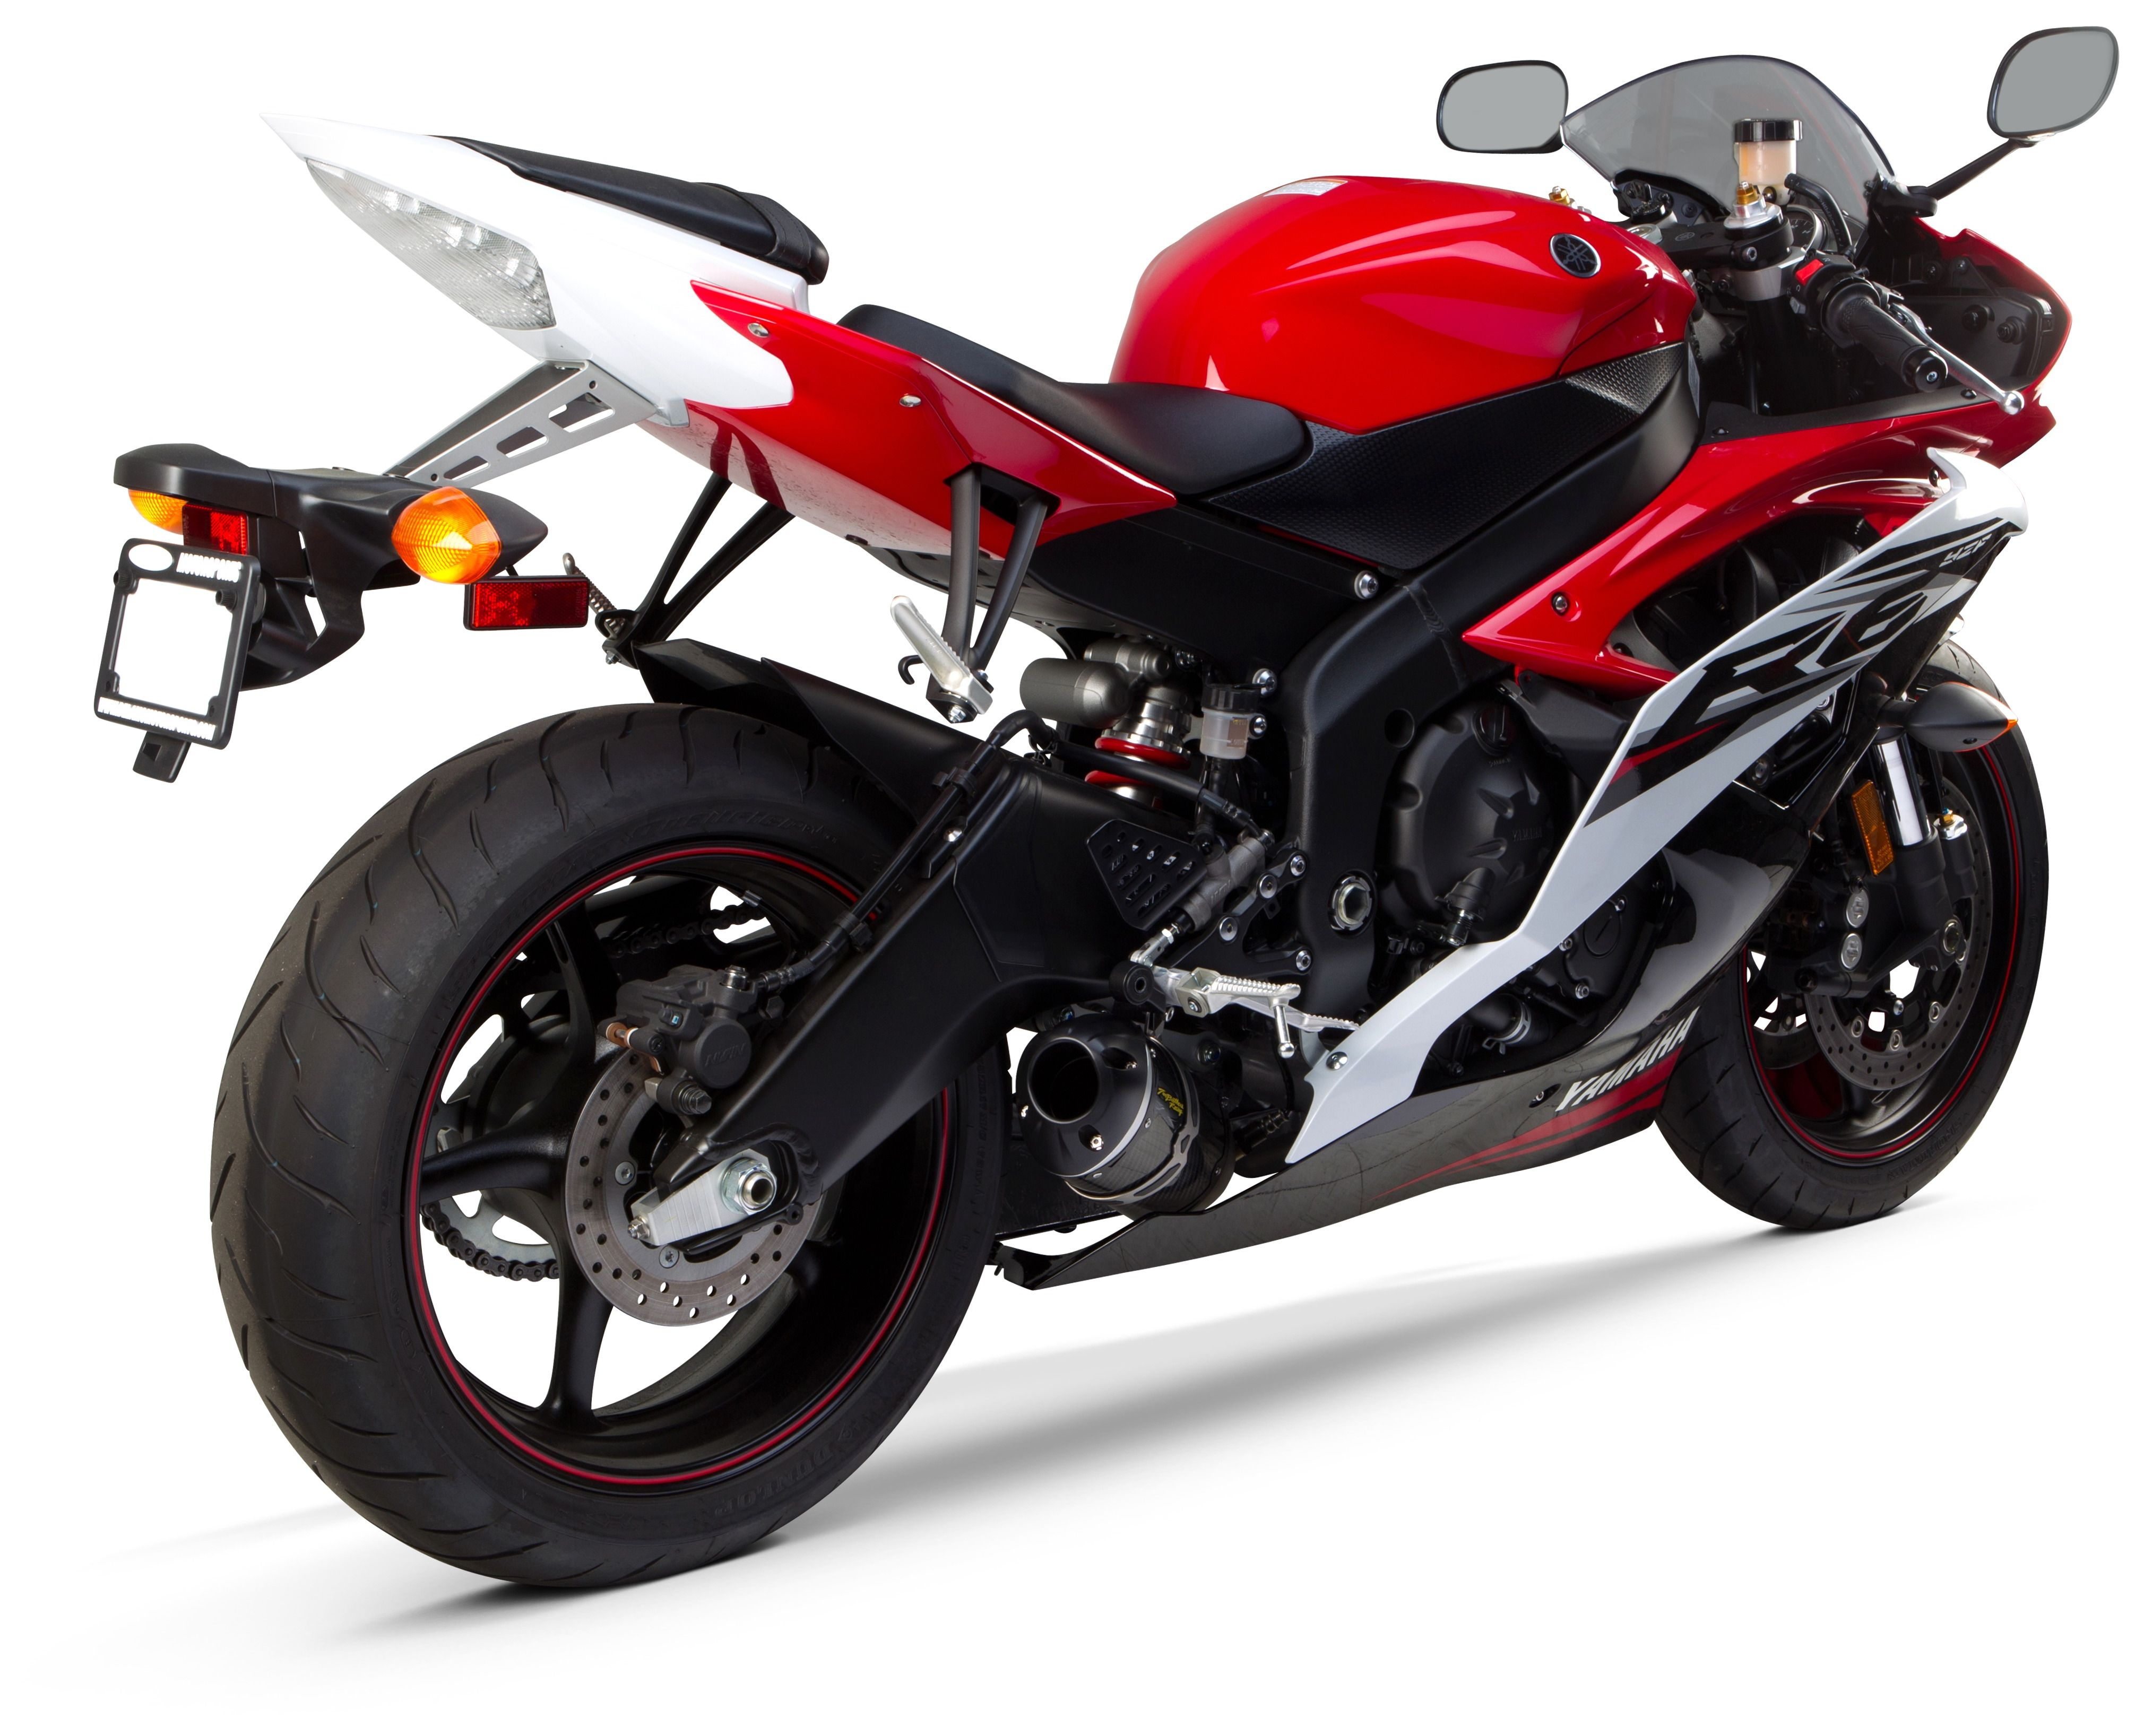 Yamaha R6 Bazzaz Wiring Diagram Tail Simple Two Brothers S1r Exhaust System 2008 2019 15 178 50 Boat